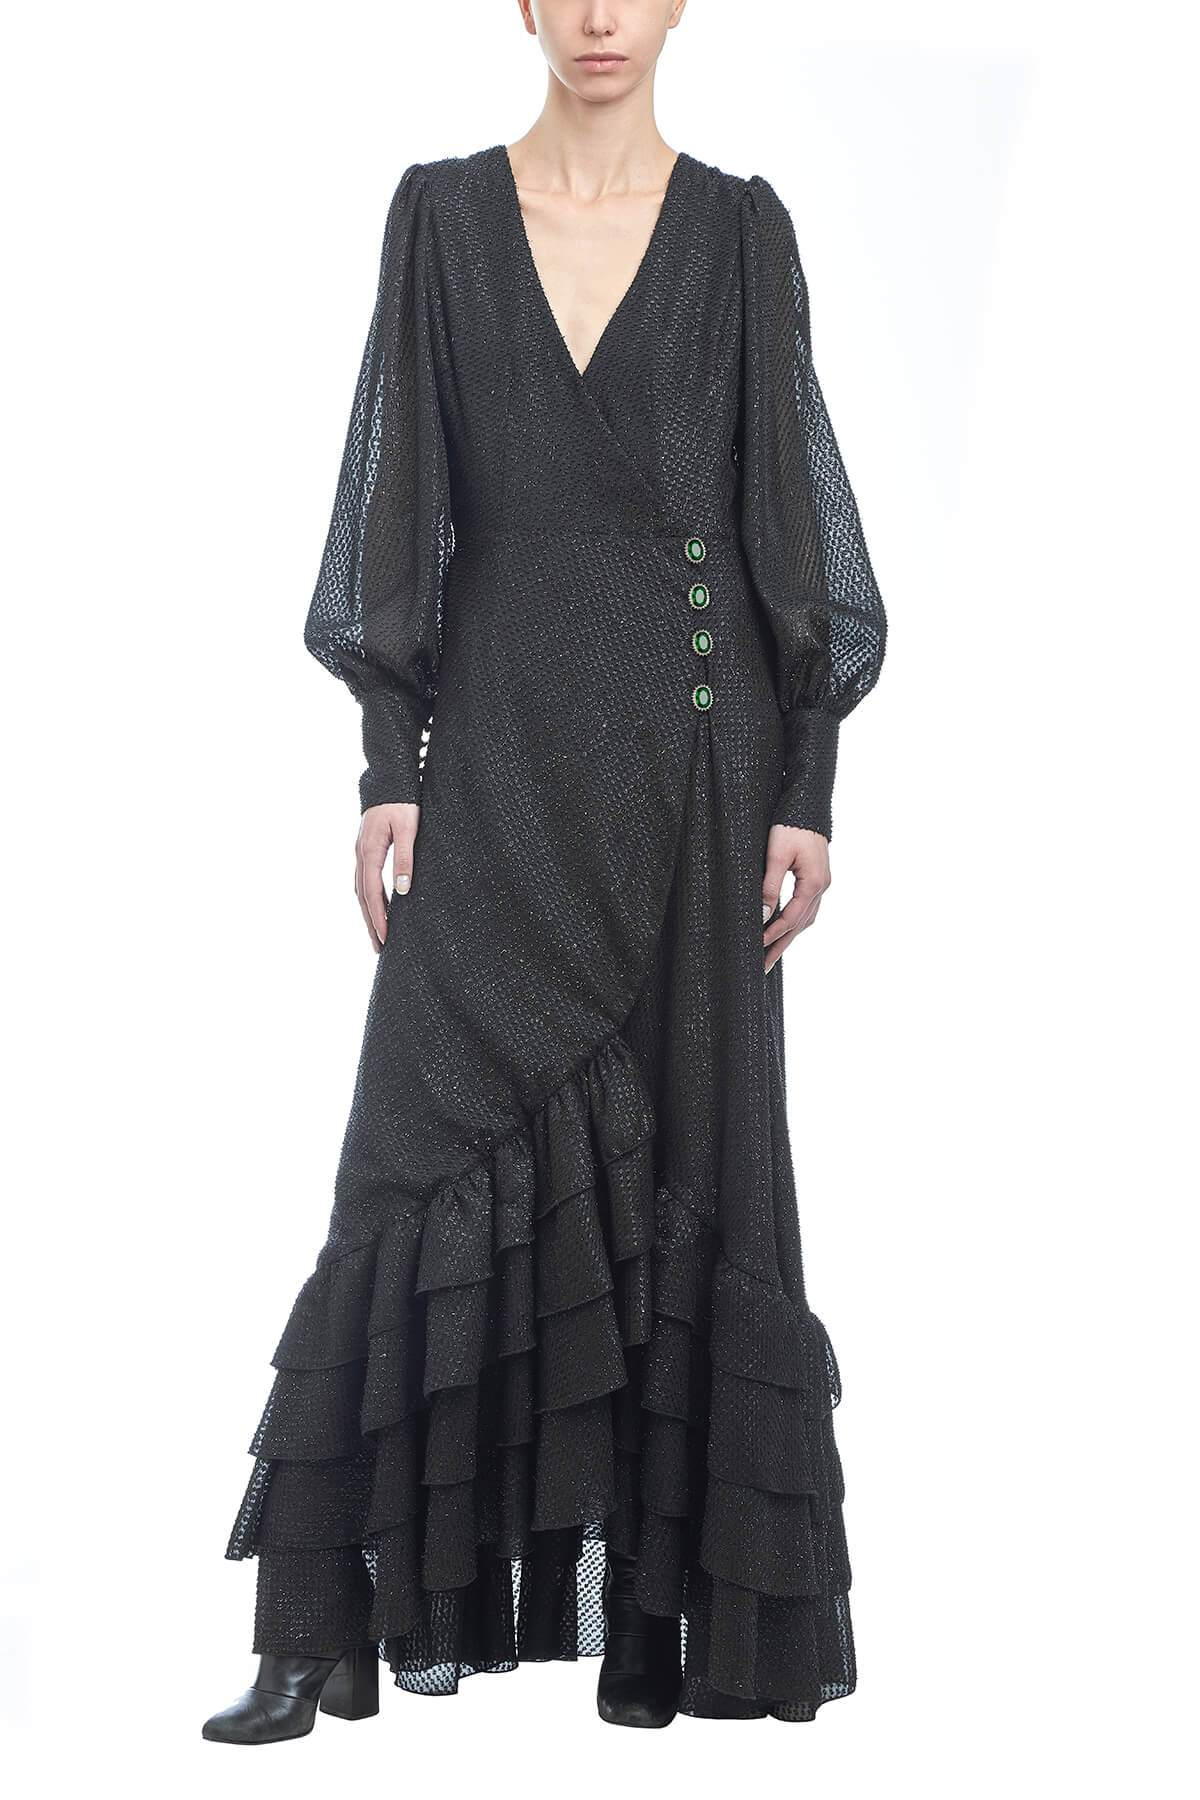 Black Clotilde Moirè Gown